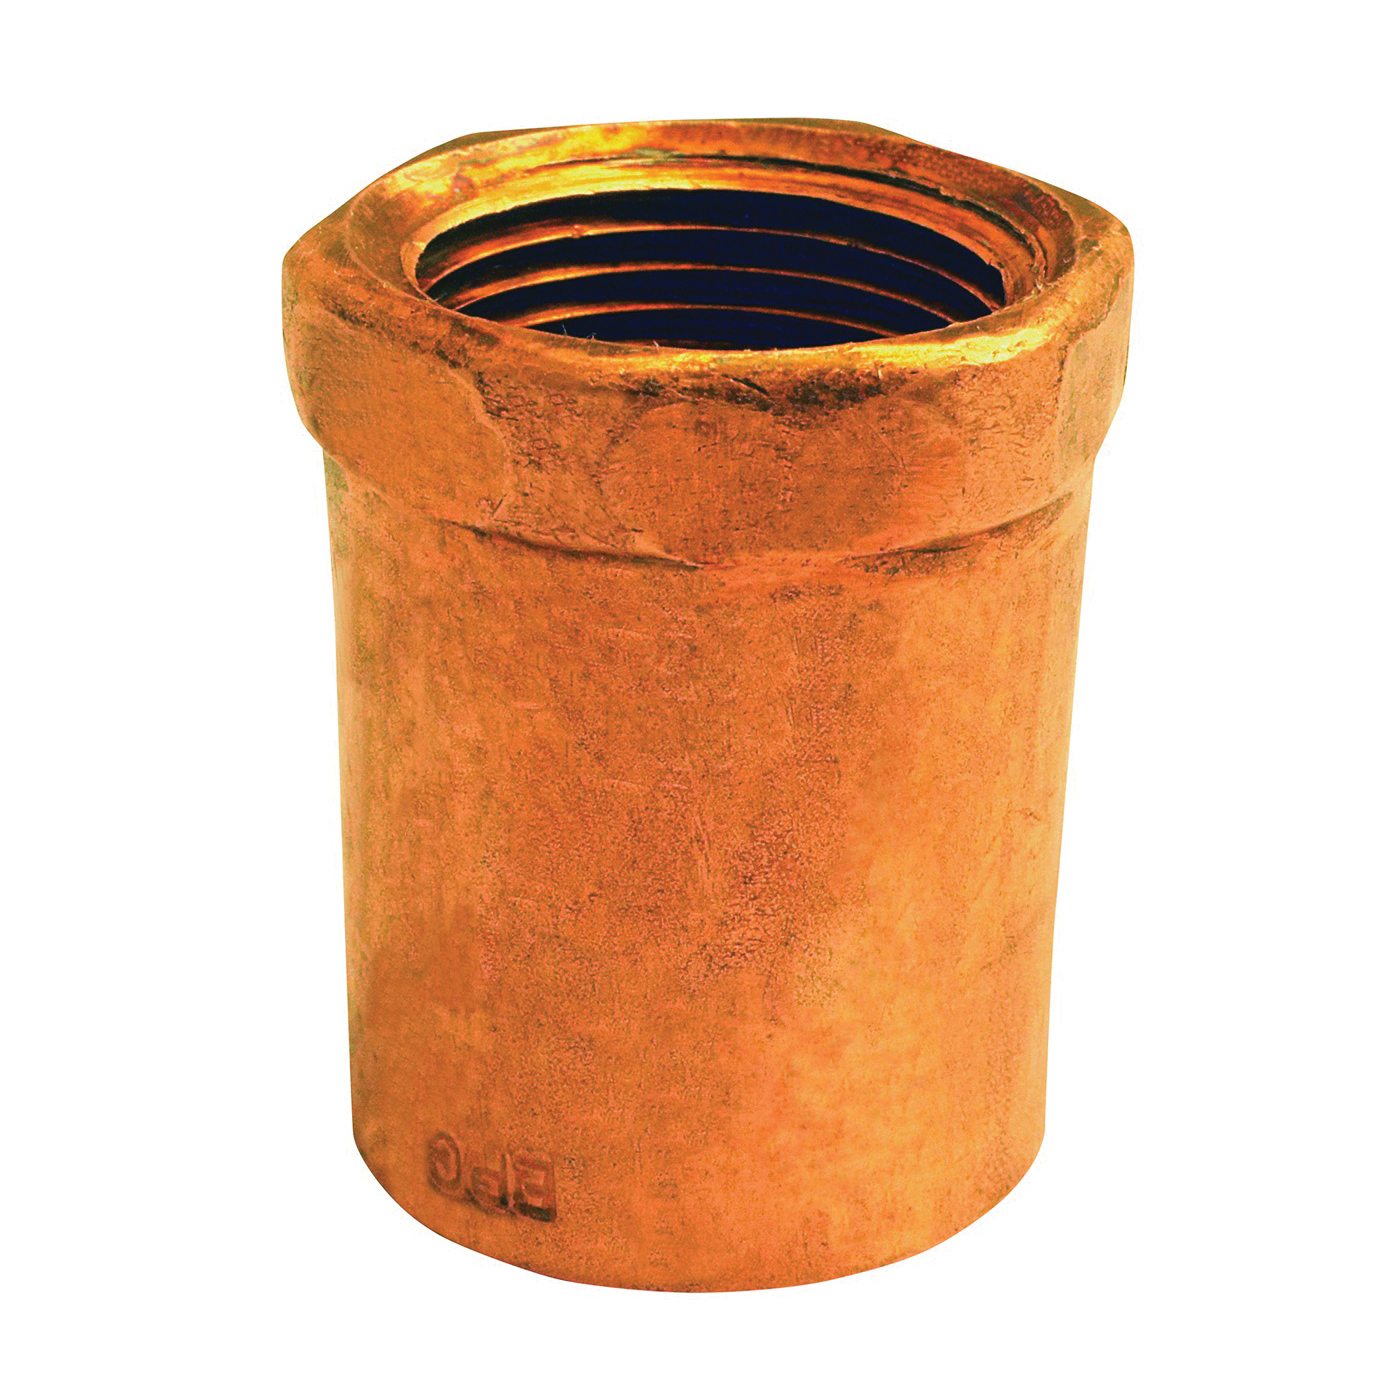 Picture of EPC 103R Series 30136 Reducing Adapter, 1/2 x 3/8 in, Sweat x FNPT, Copper